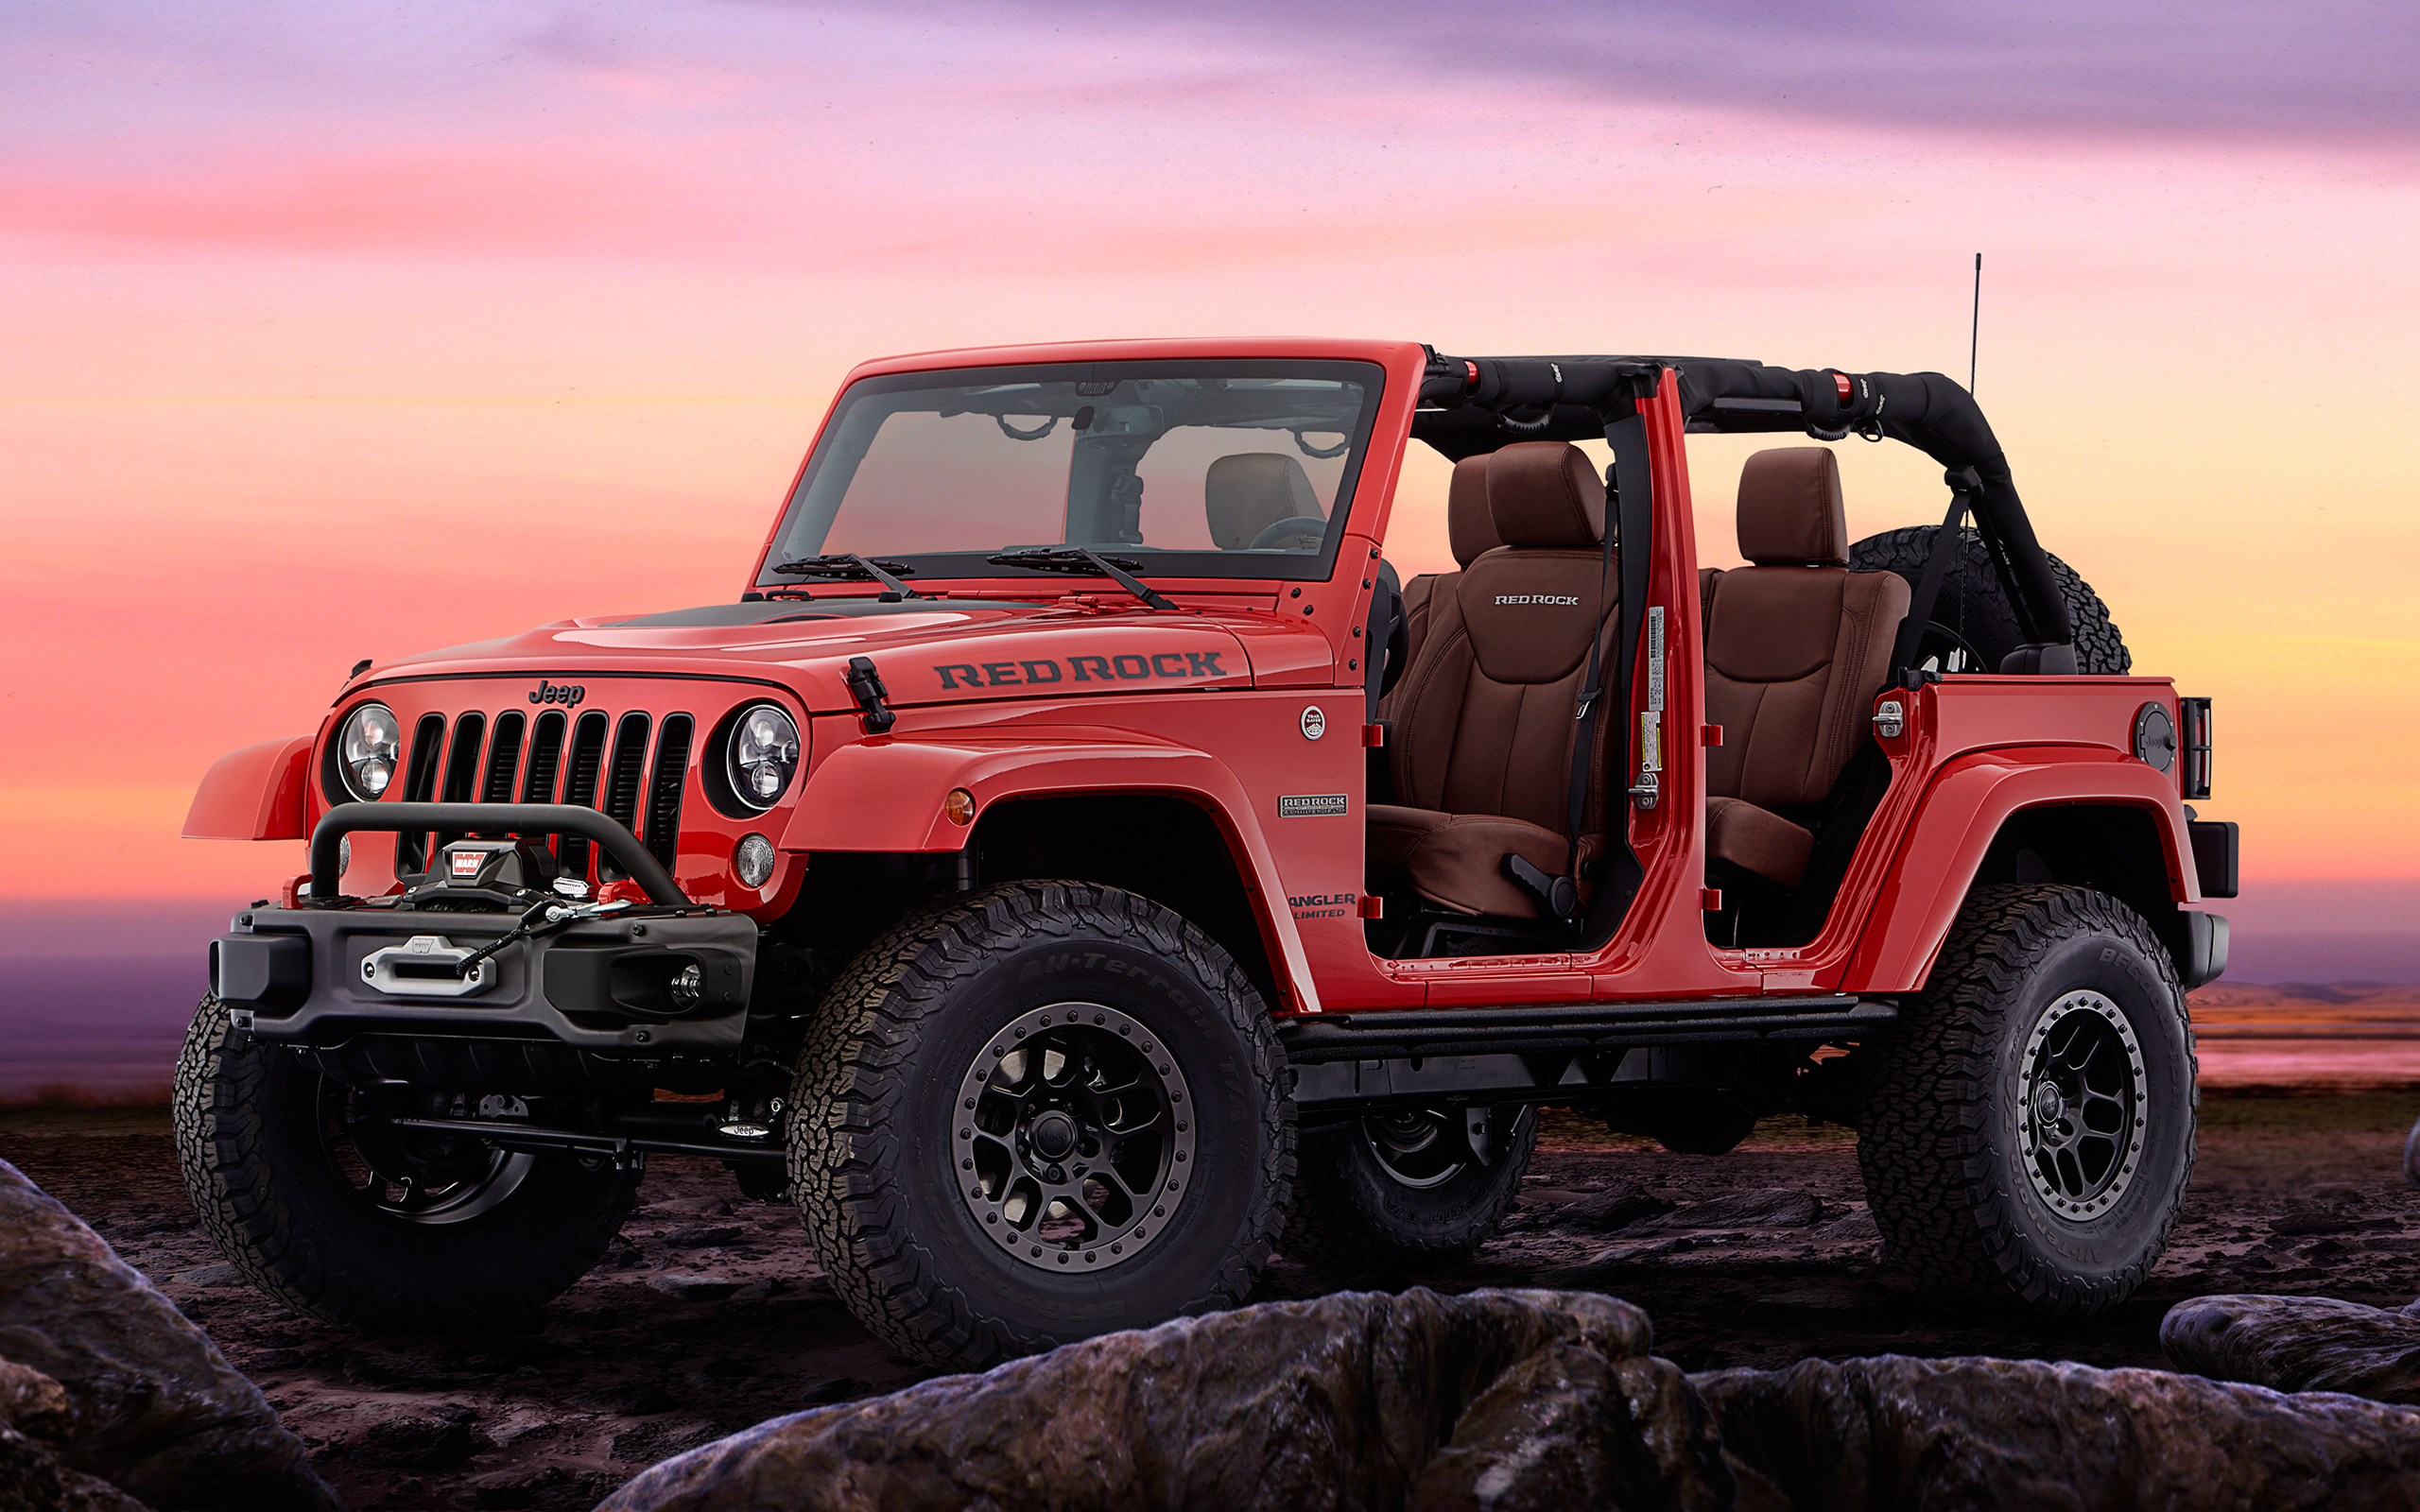 Jeep wrangler red rock concept. обои скачать